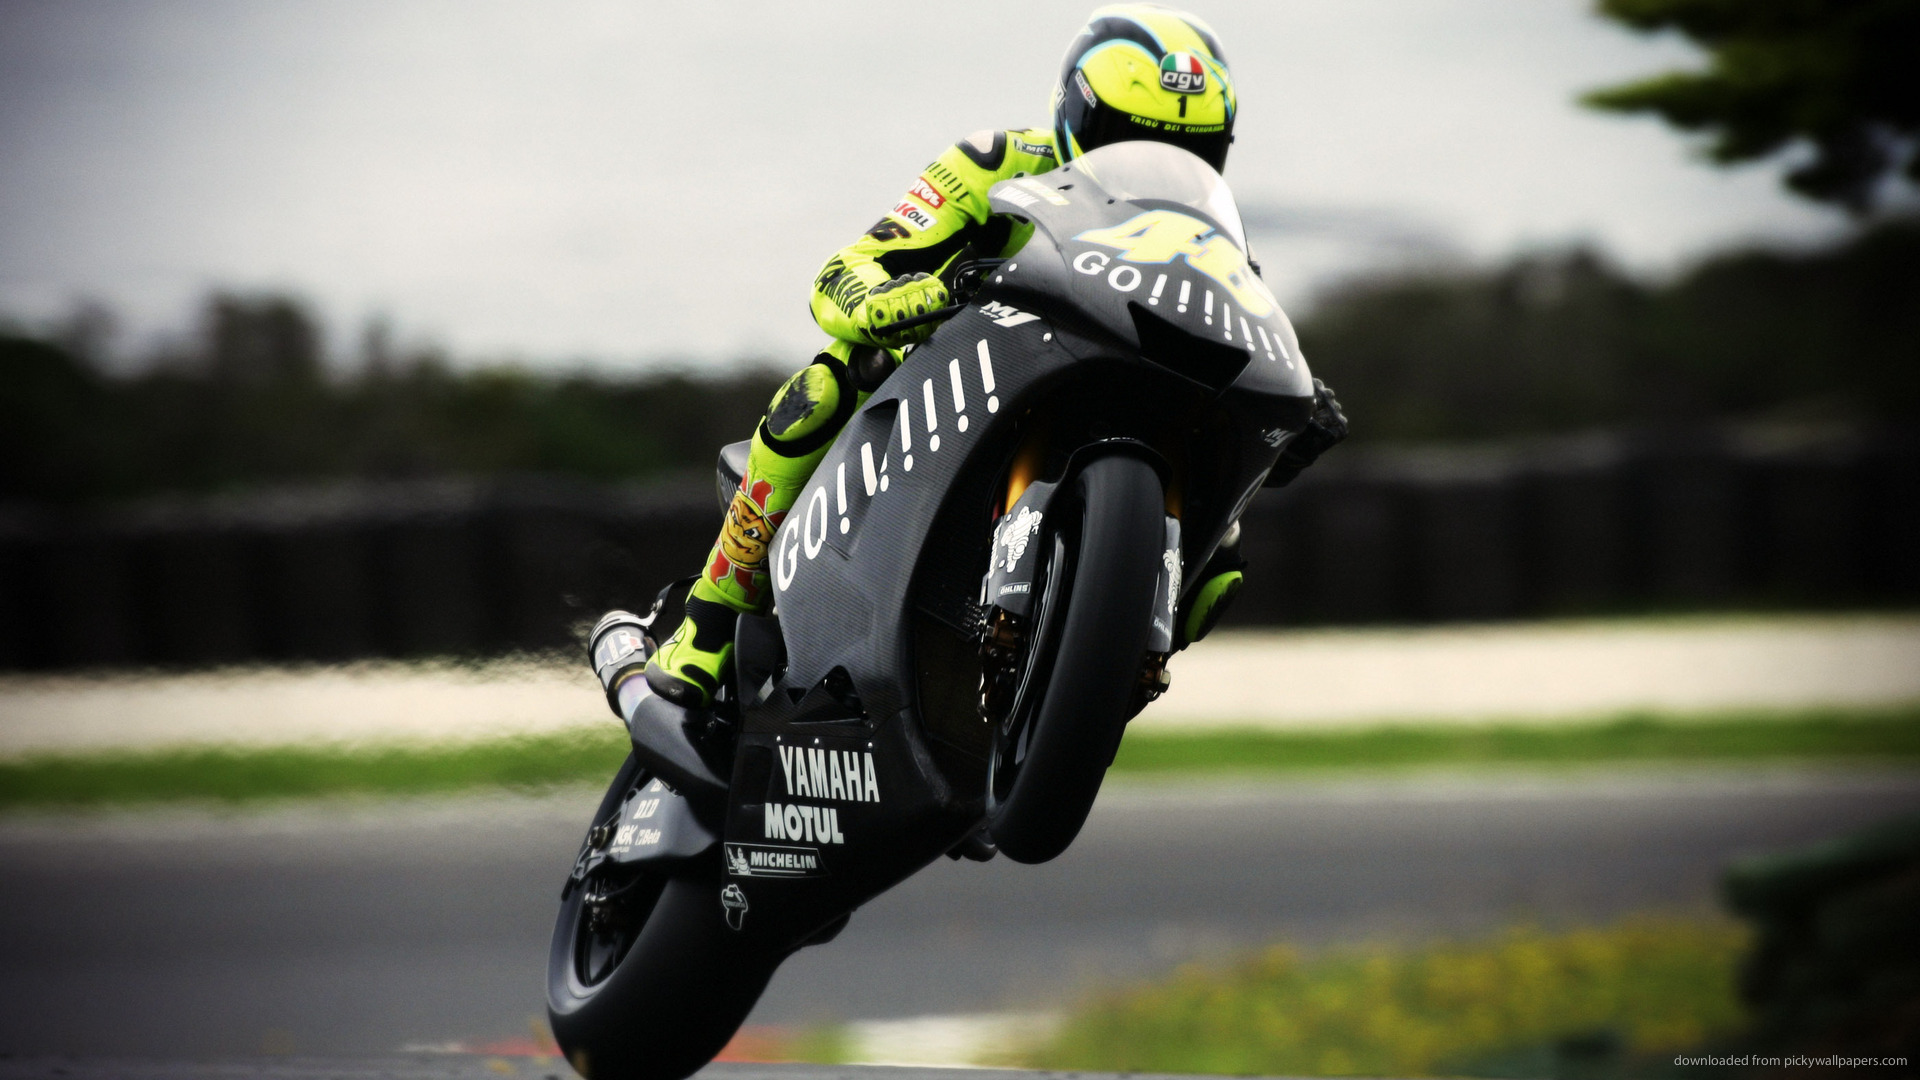 valentino yamaha rossi twitter wallpapers sport motorcycles 1920x1080